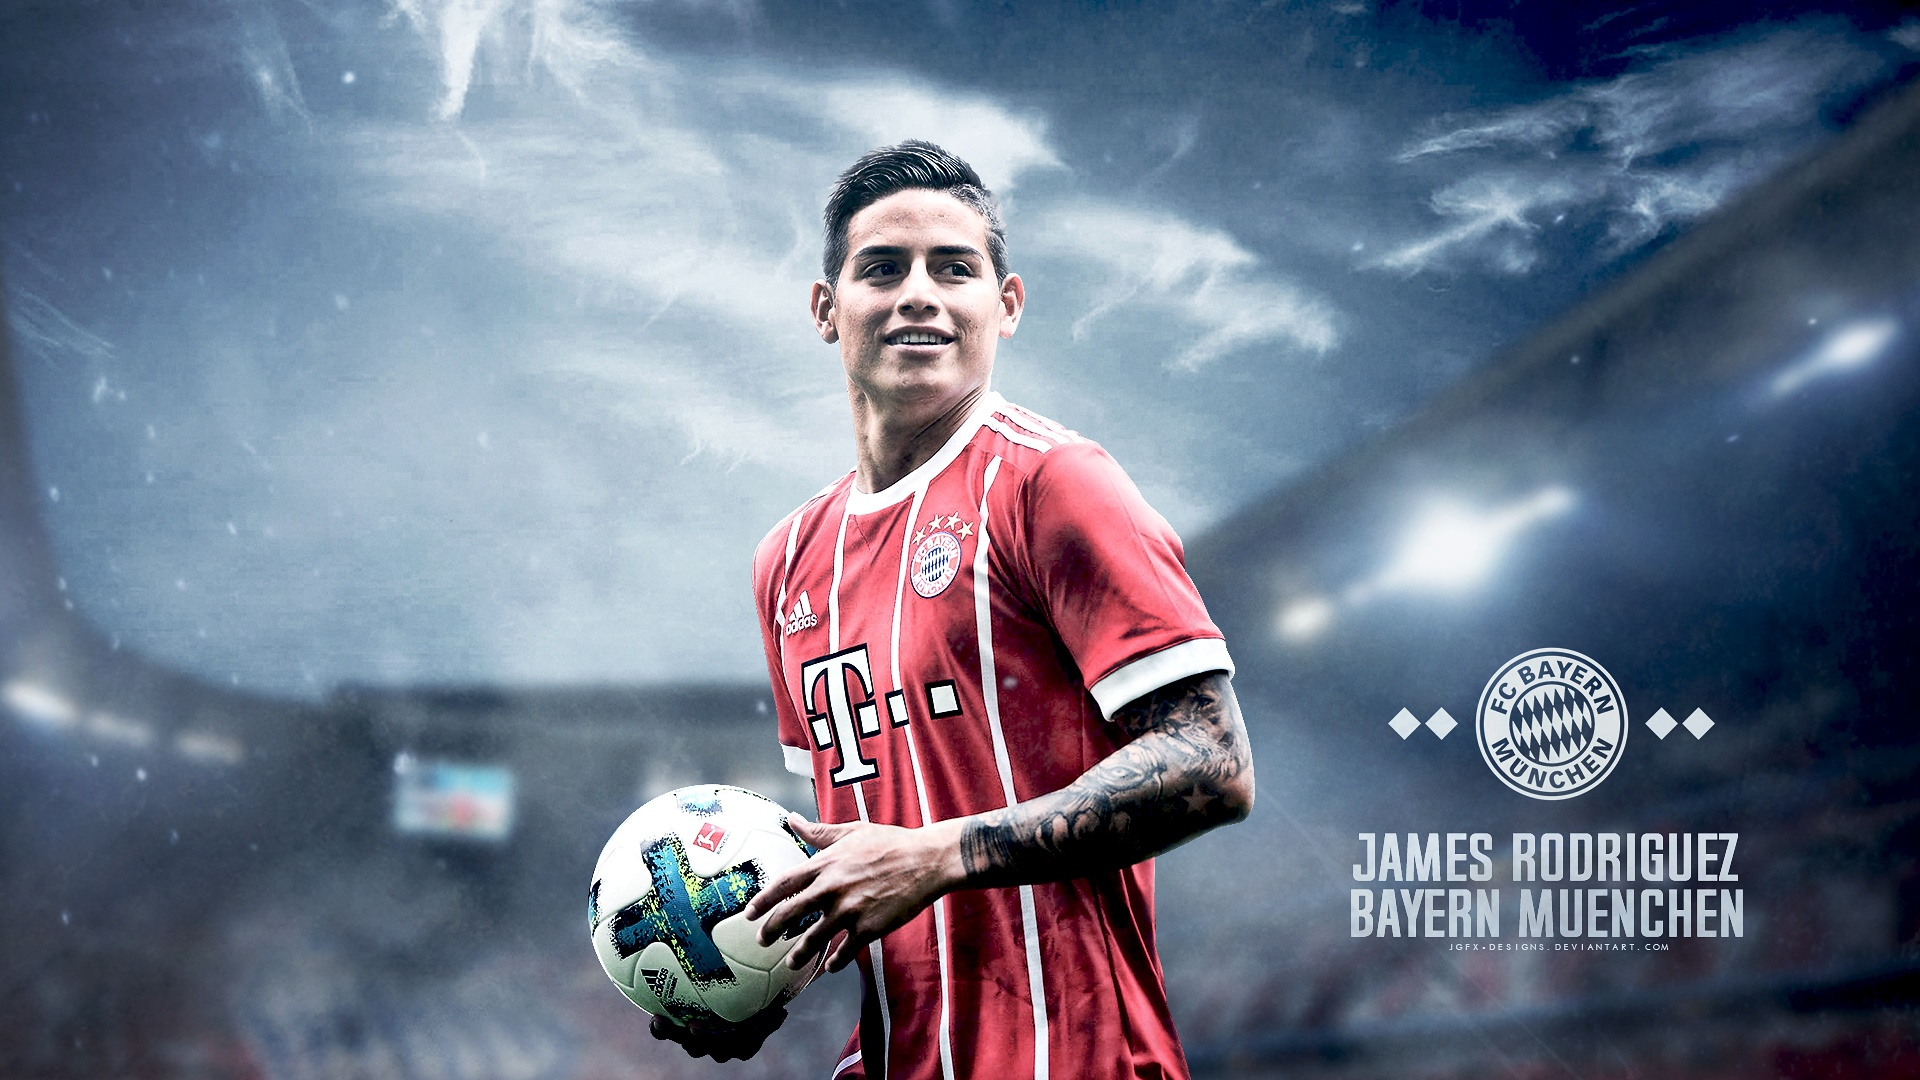 Gallery Designs Welcome To Bayern James Rodriguez By Jgfx Designs On